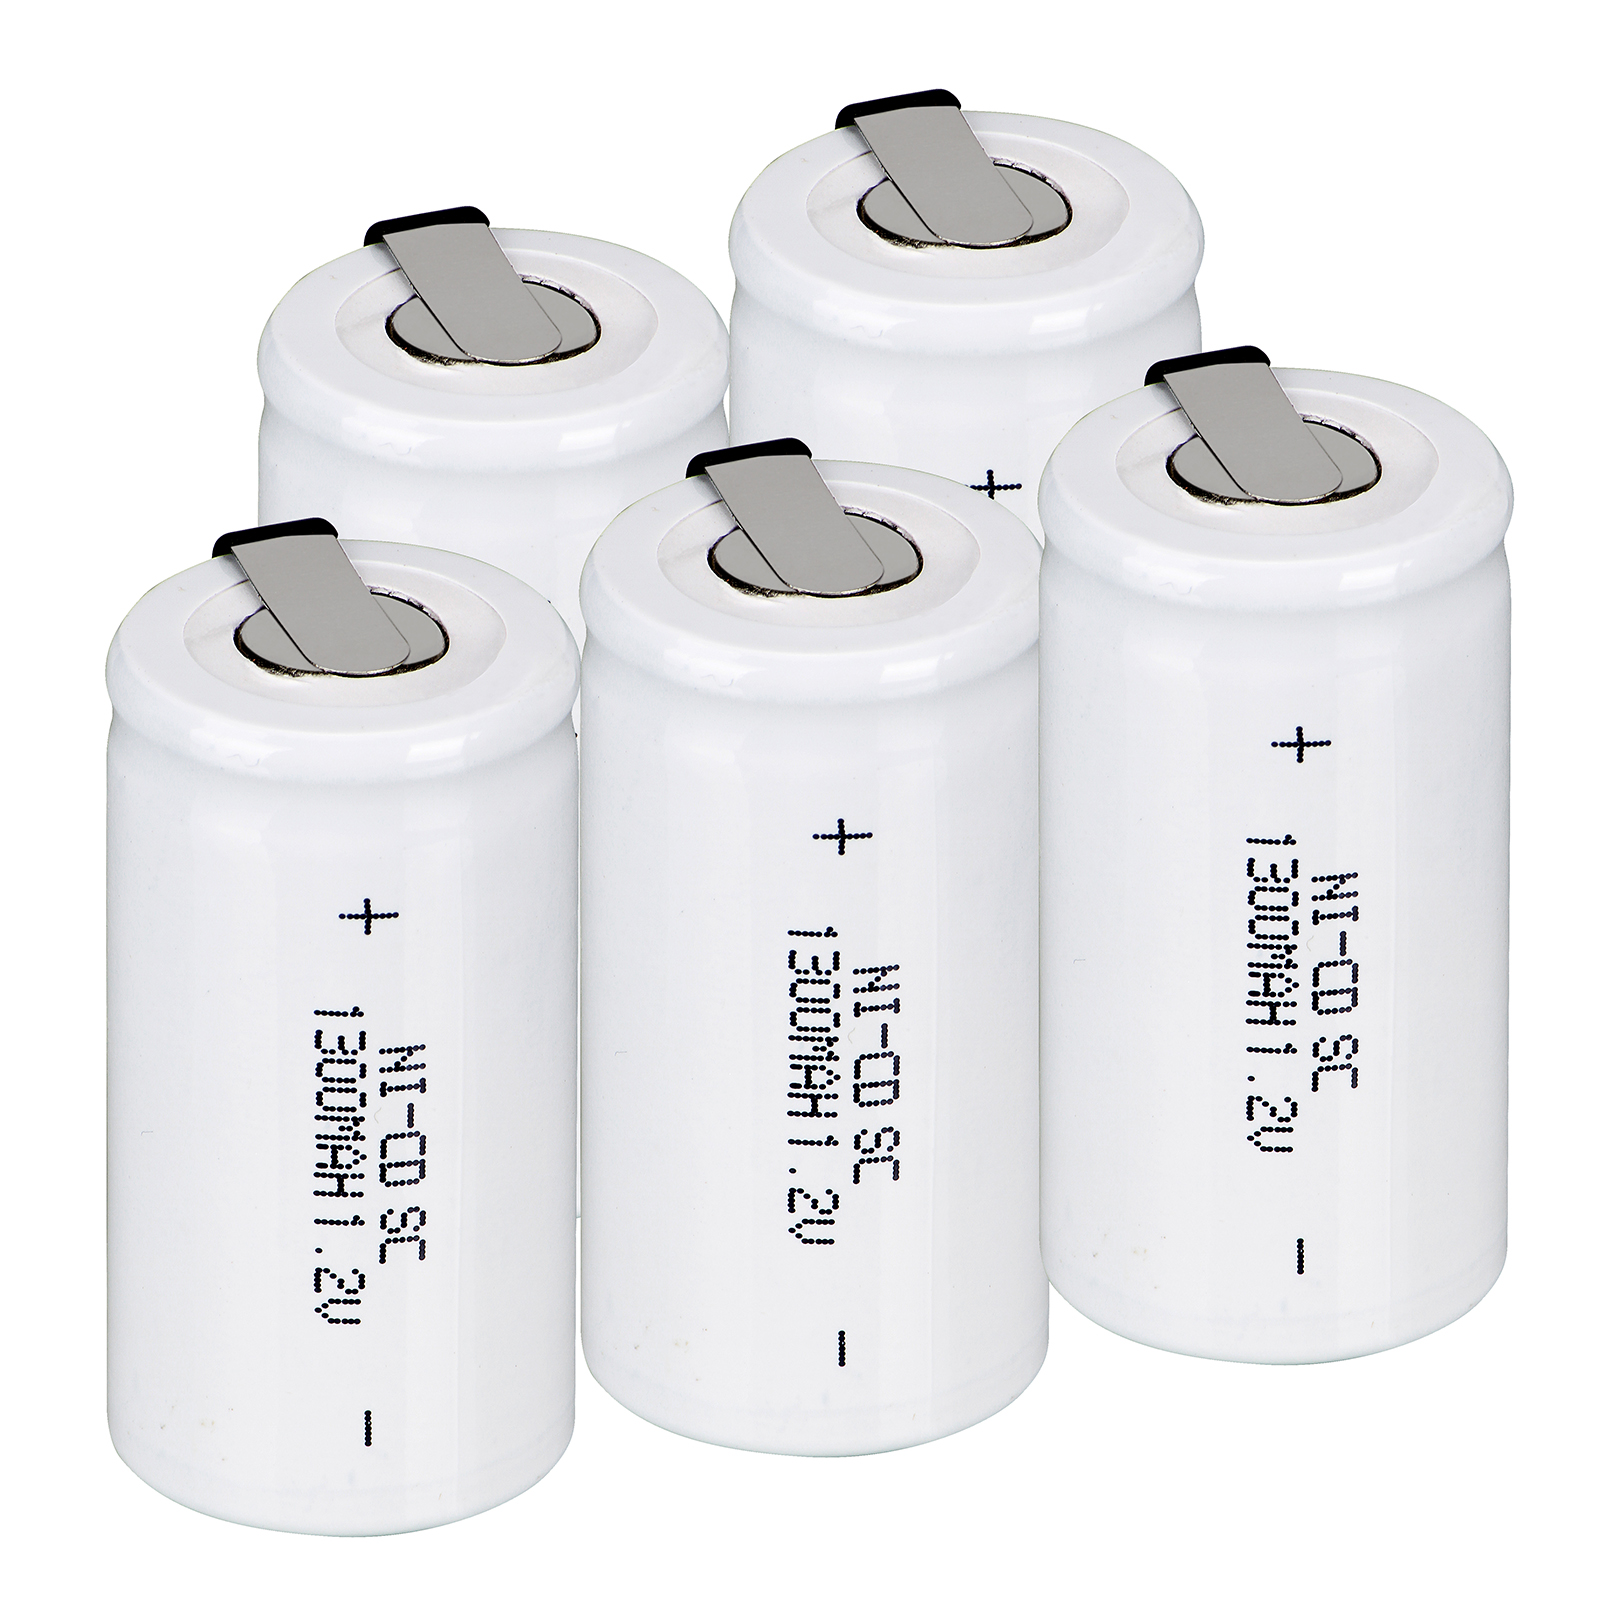 5pcs SC rechargeable battery 1300mAh <font><b>ni</b></font>-<font><b>cd</b></font> <font><b>1.2</b></font> <font><b>v</b></font> battery <font><b>ni</b></font> <font><b>cd</b></font> nicd batteries 1.2v with welding tabs image